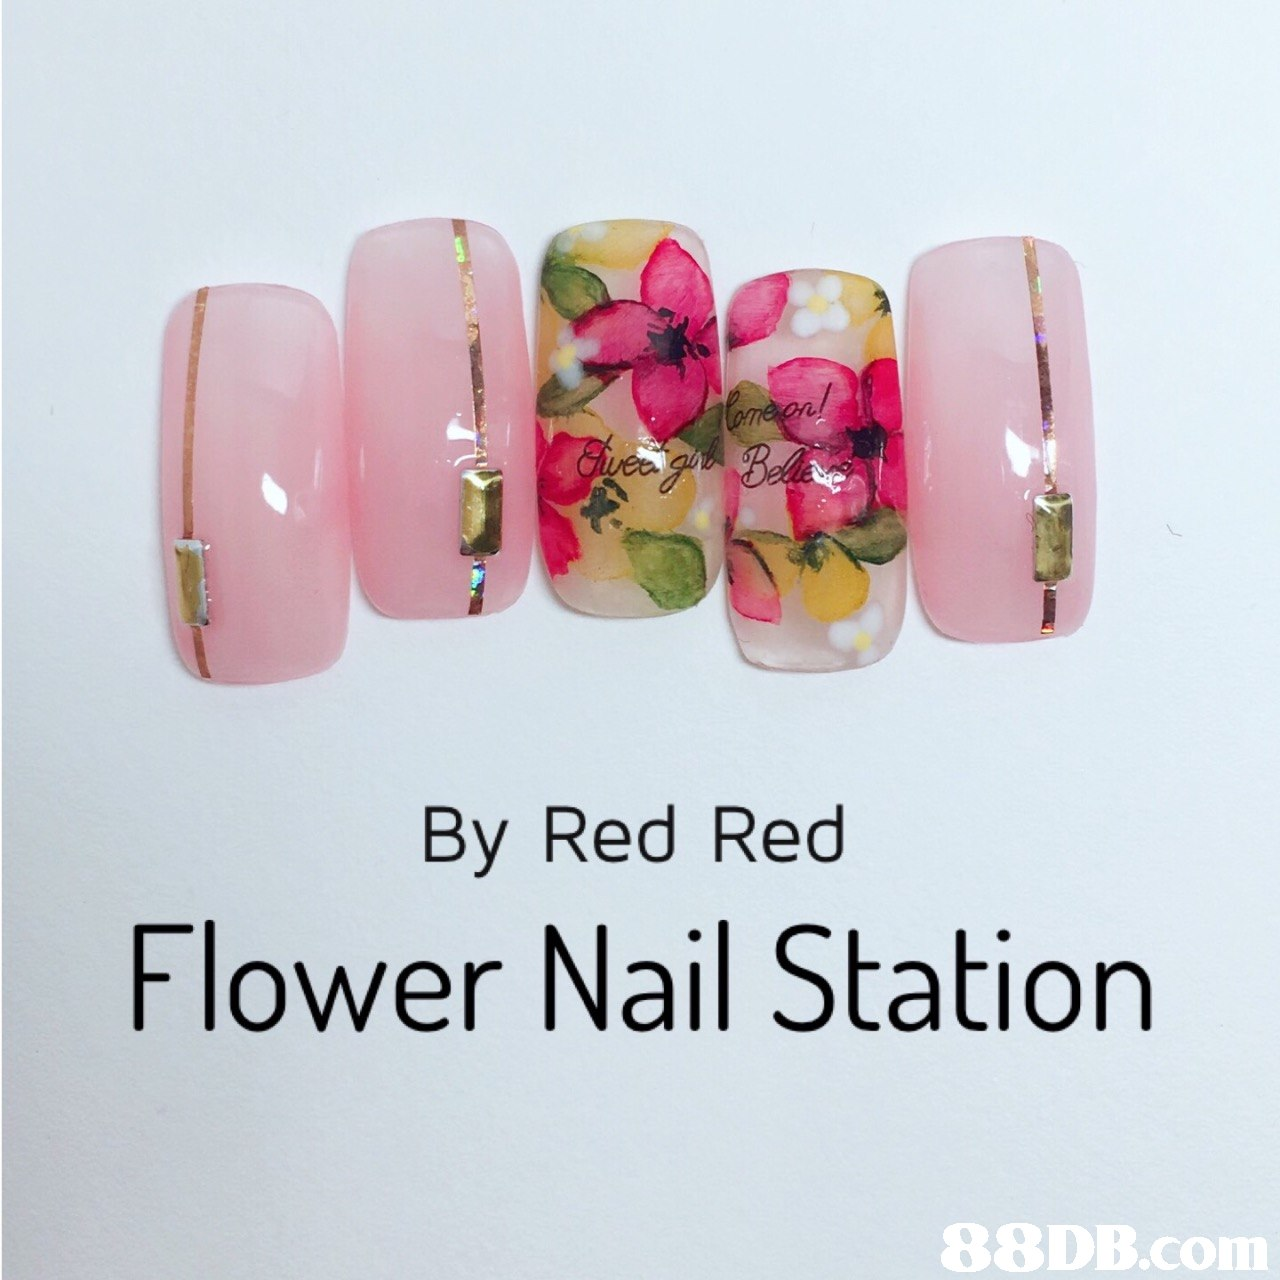 By Red Red Flower Nail Station   Nail,Nail polish,Nail care,Pink,Manicure